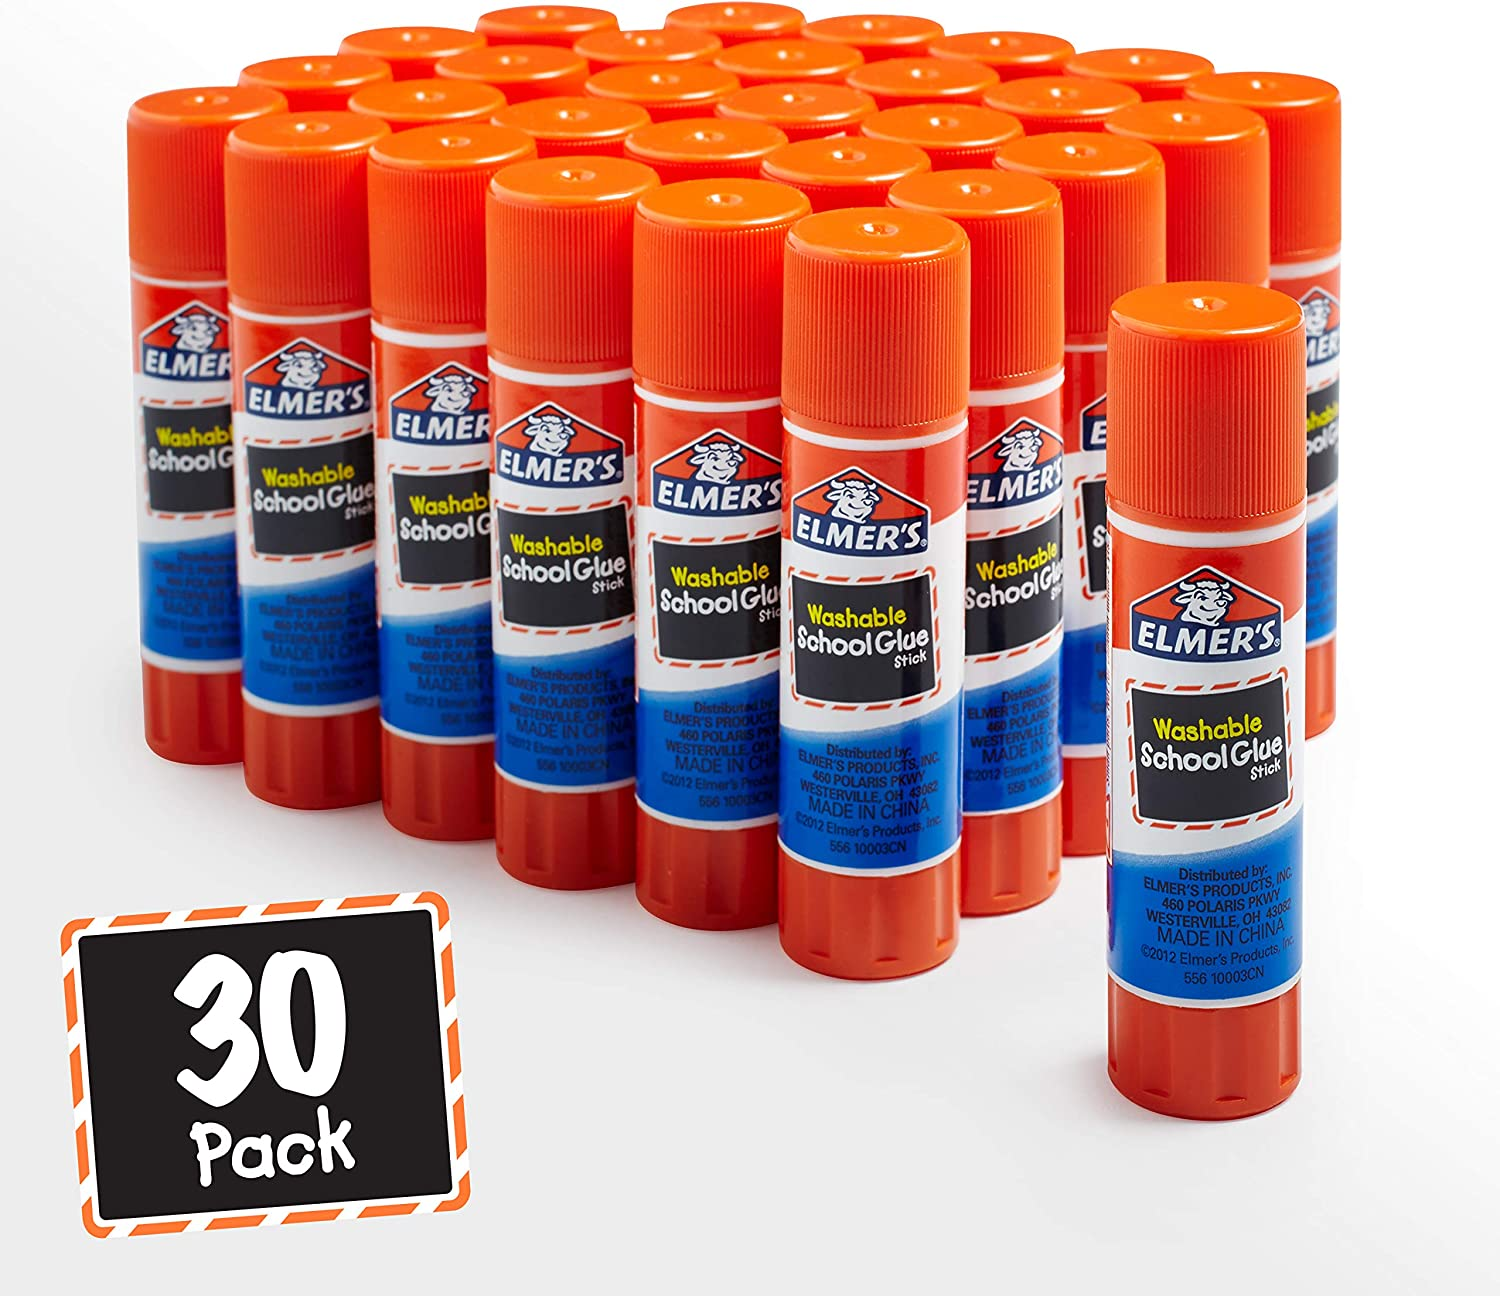 Elmer's All Purpose School Glue Sticks, Washable, 7 Gram, 30 Count : Office Products